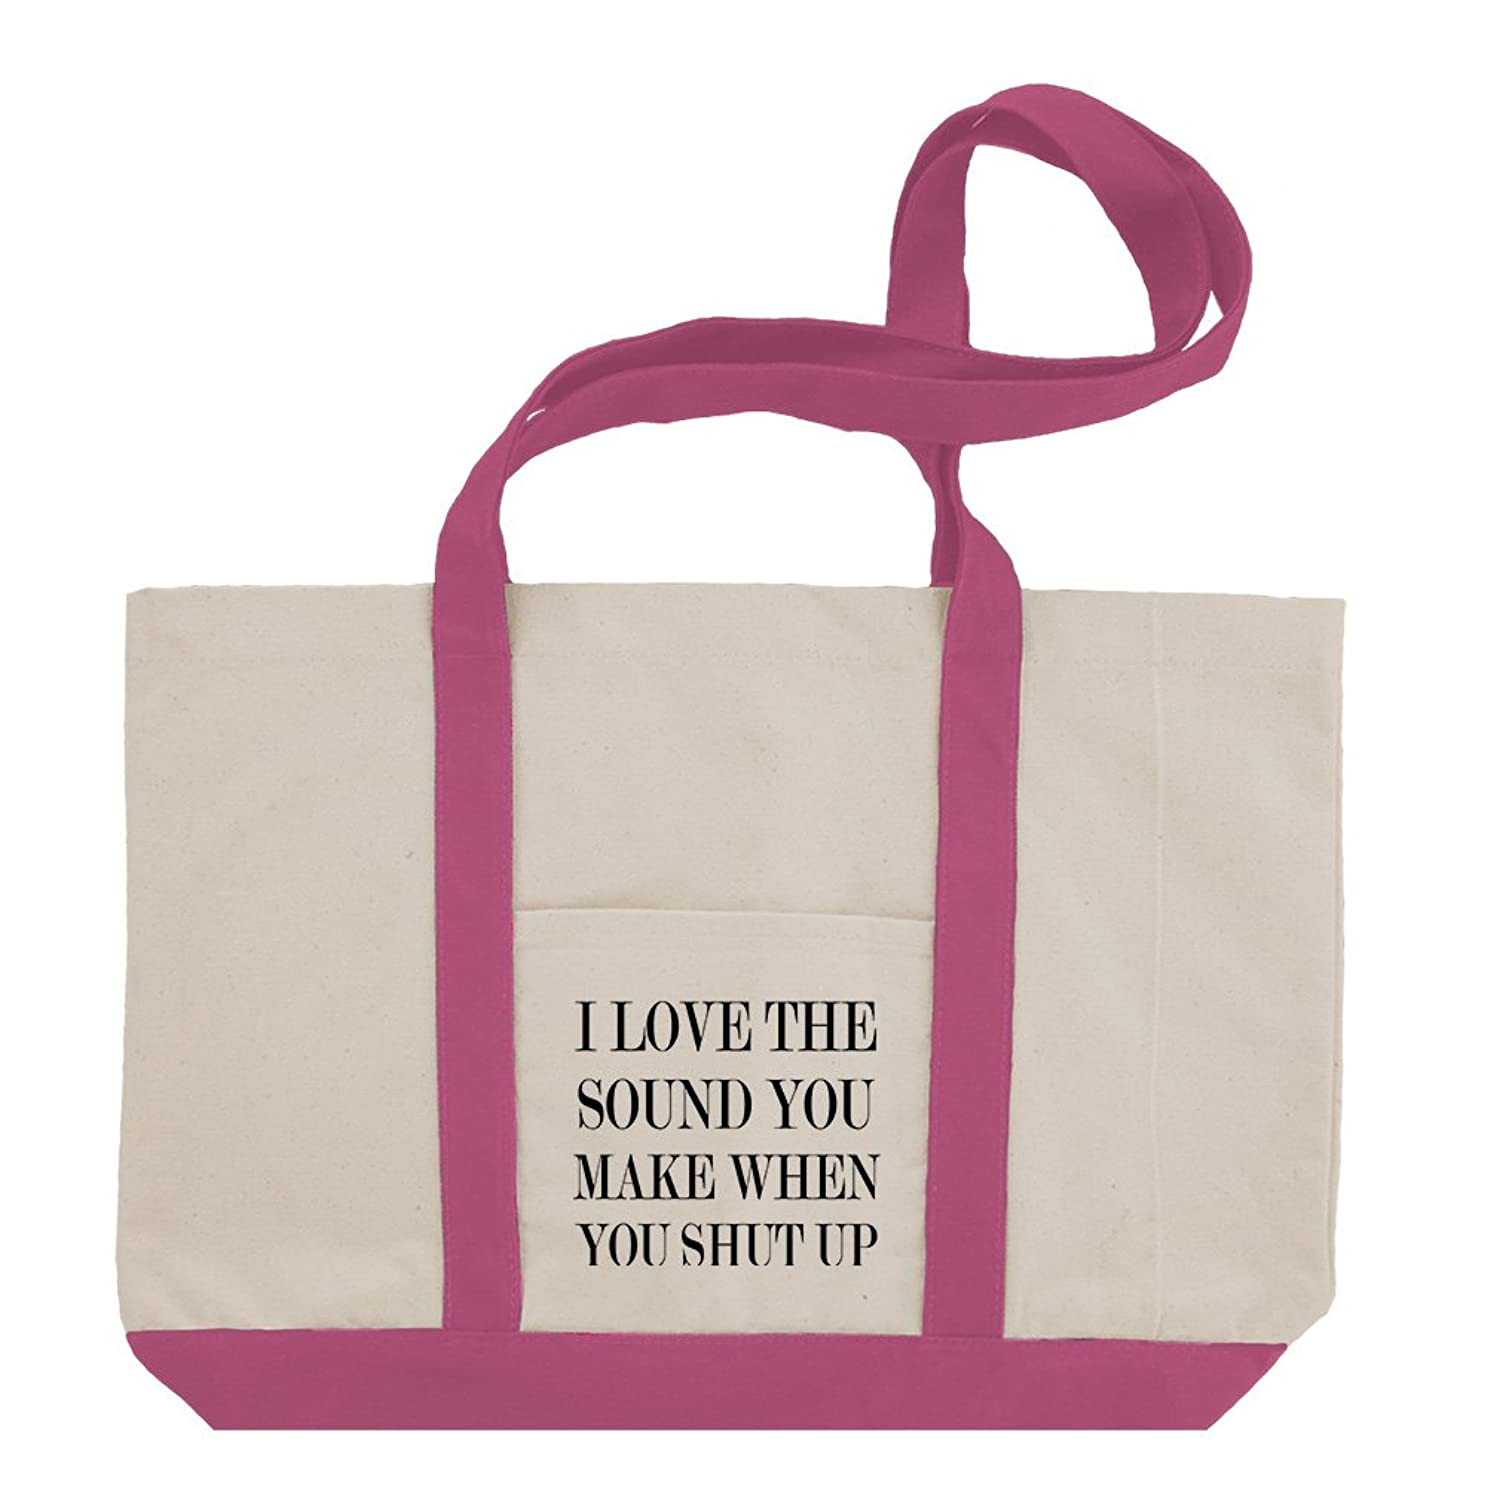 I Love The You Make When You Shut Up Cotton Canvas Boat Tote Bag Tote